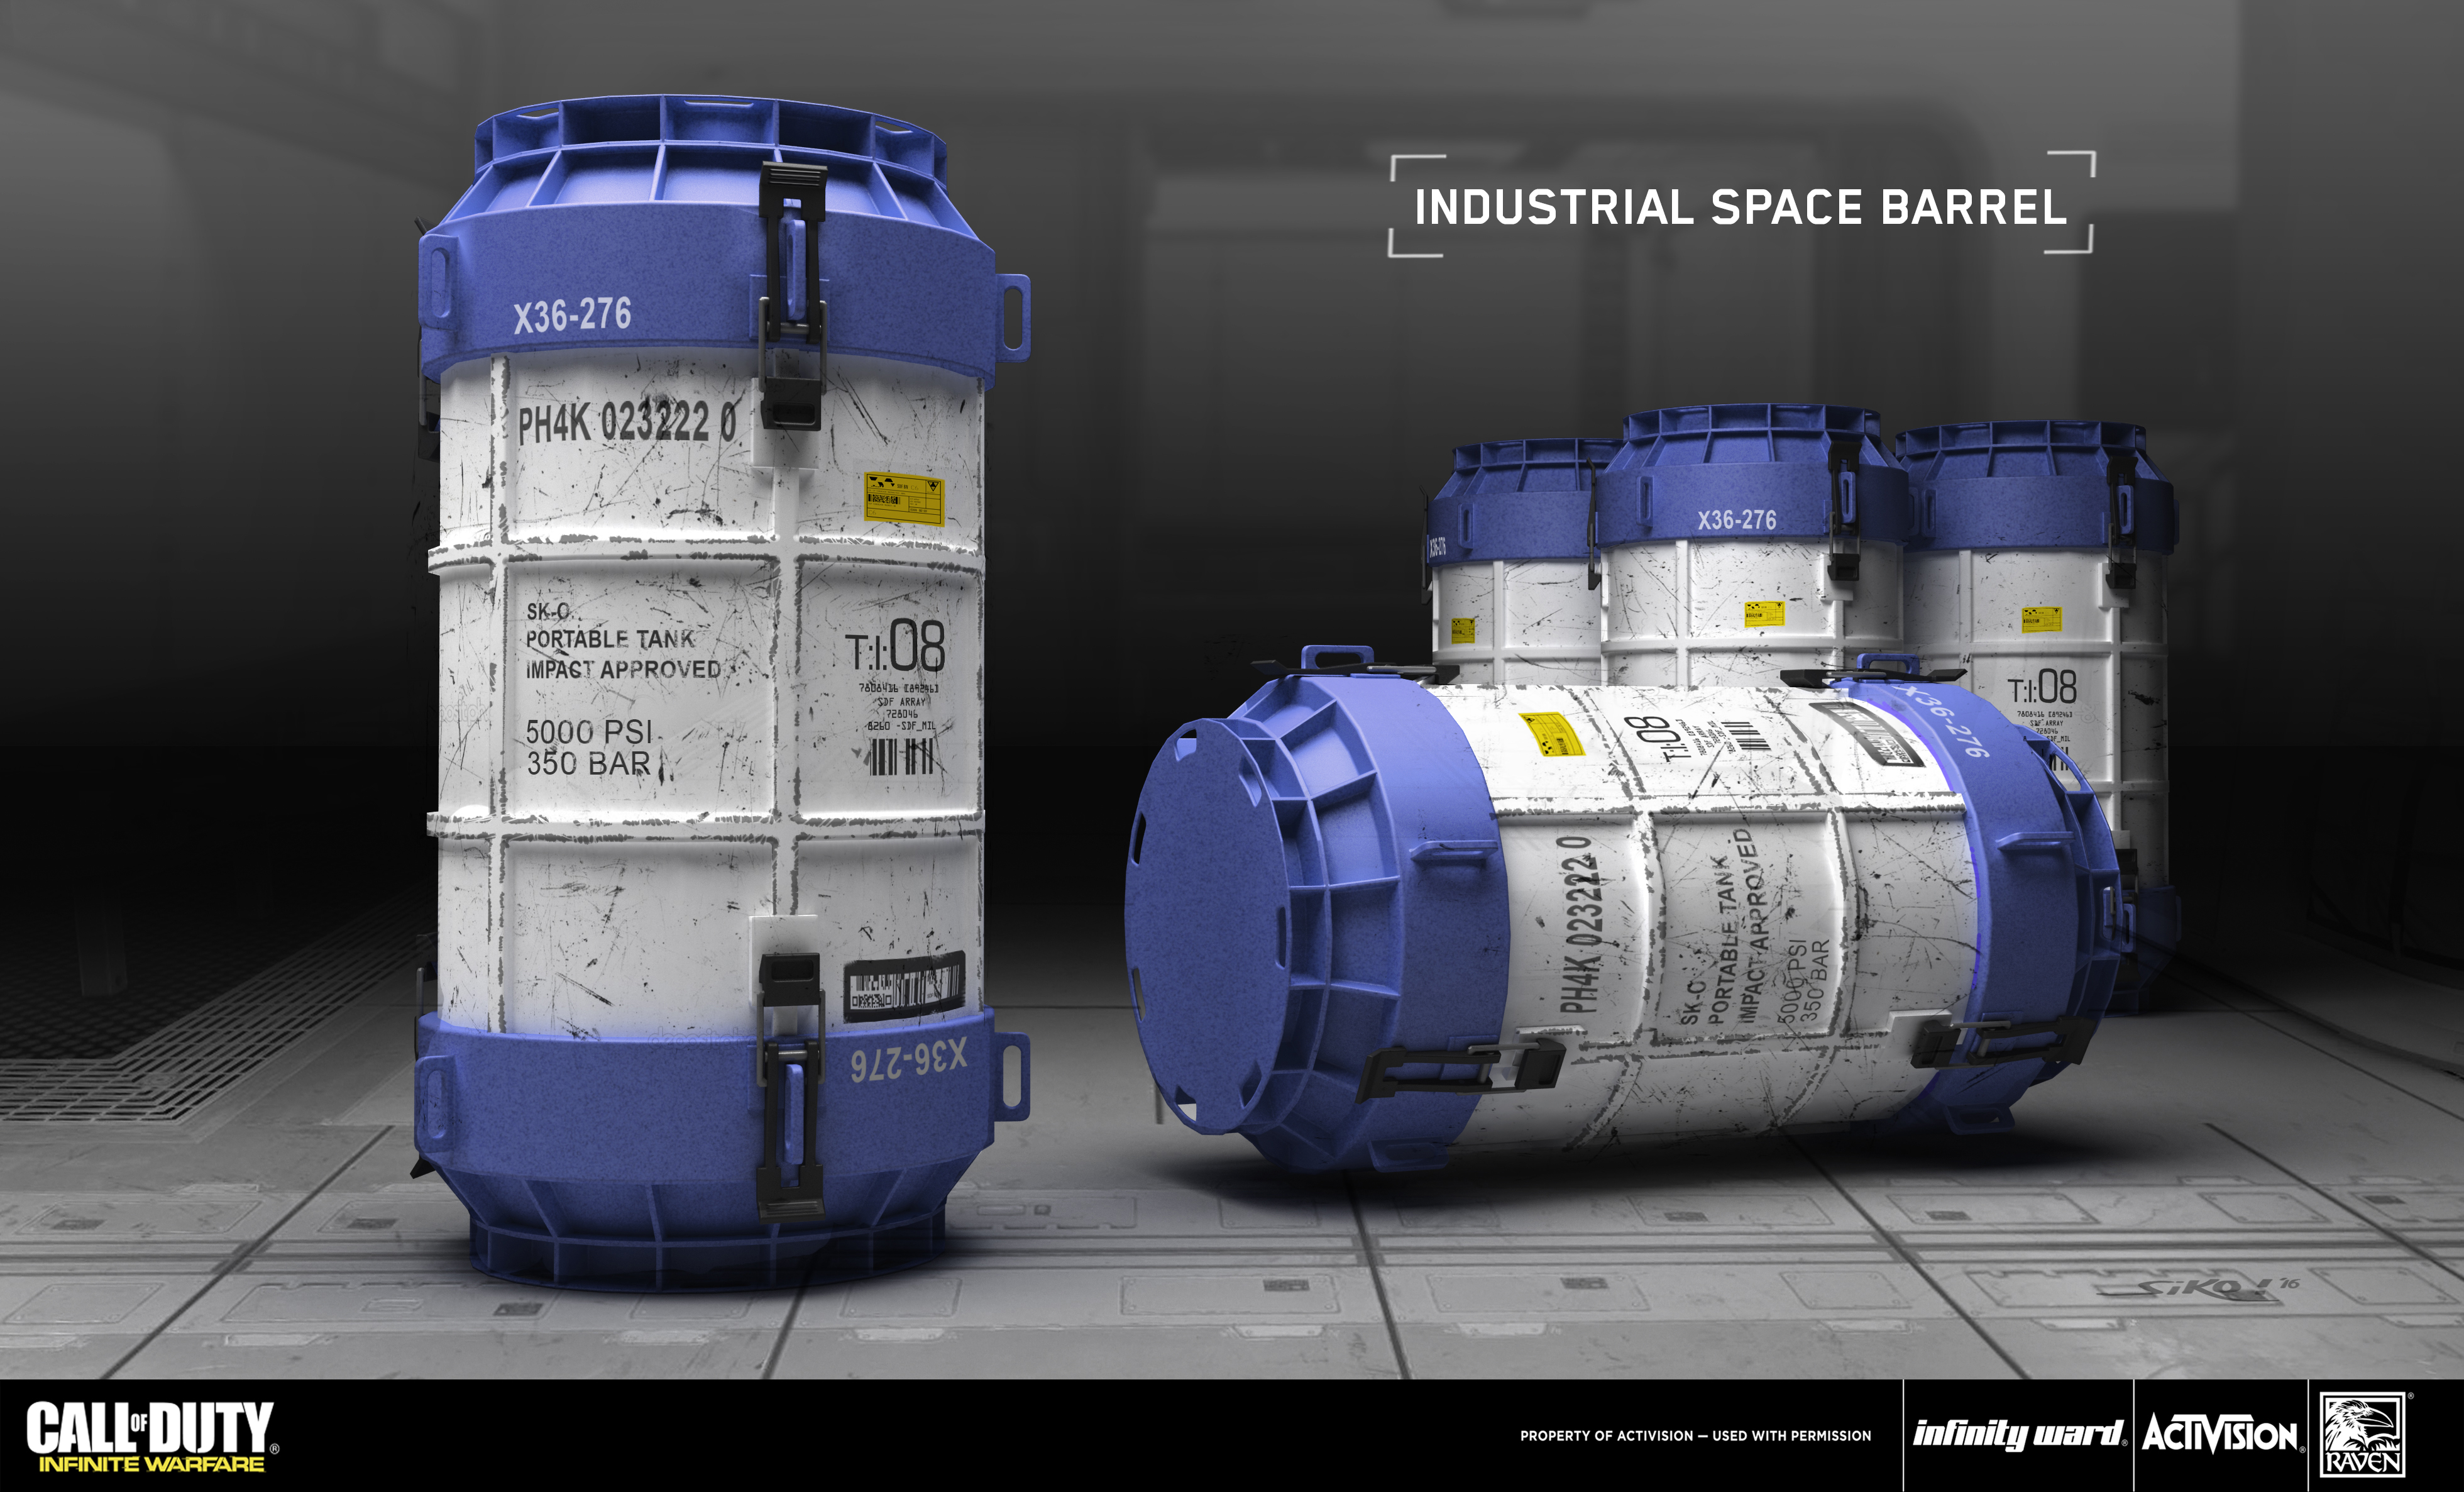 PROP_sko_iw7_03-17-16_industrial_space_barrel_blue2